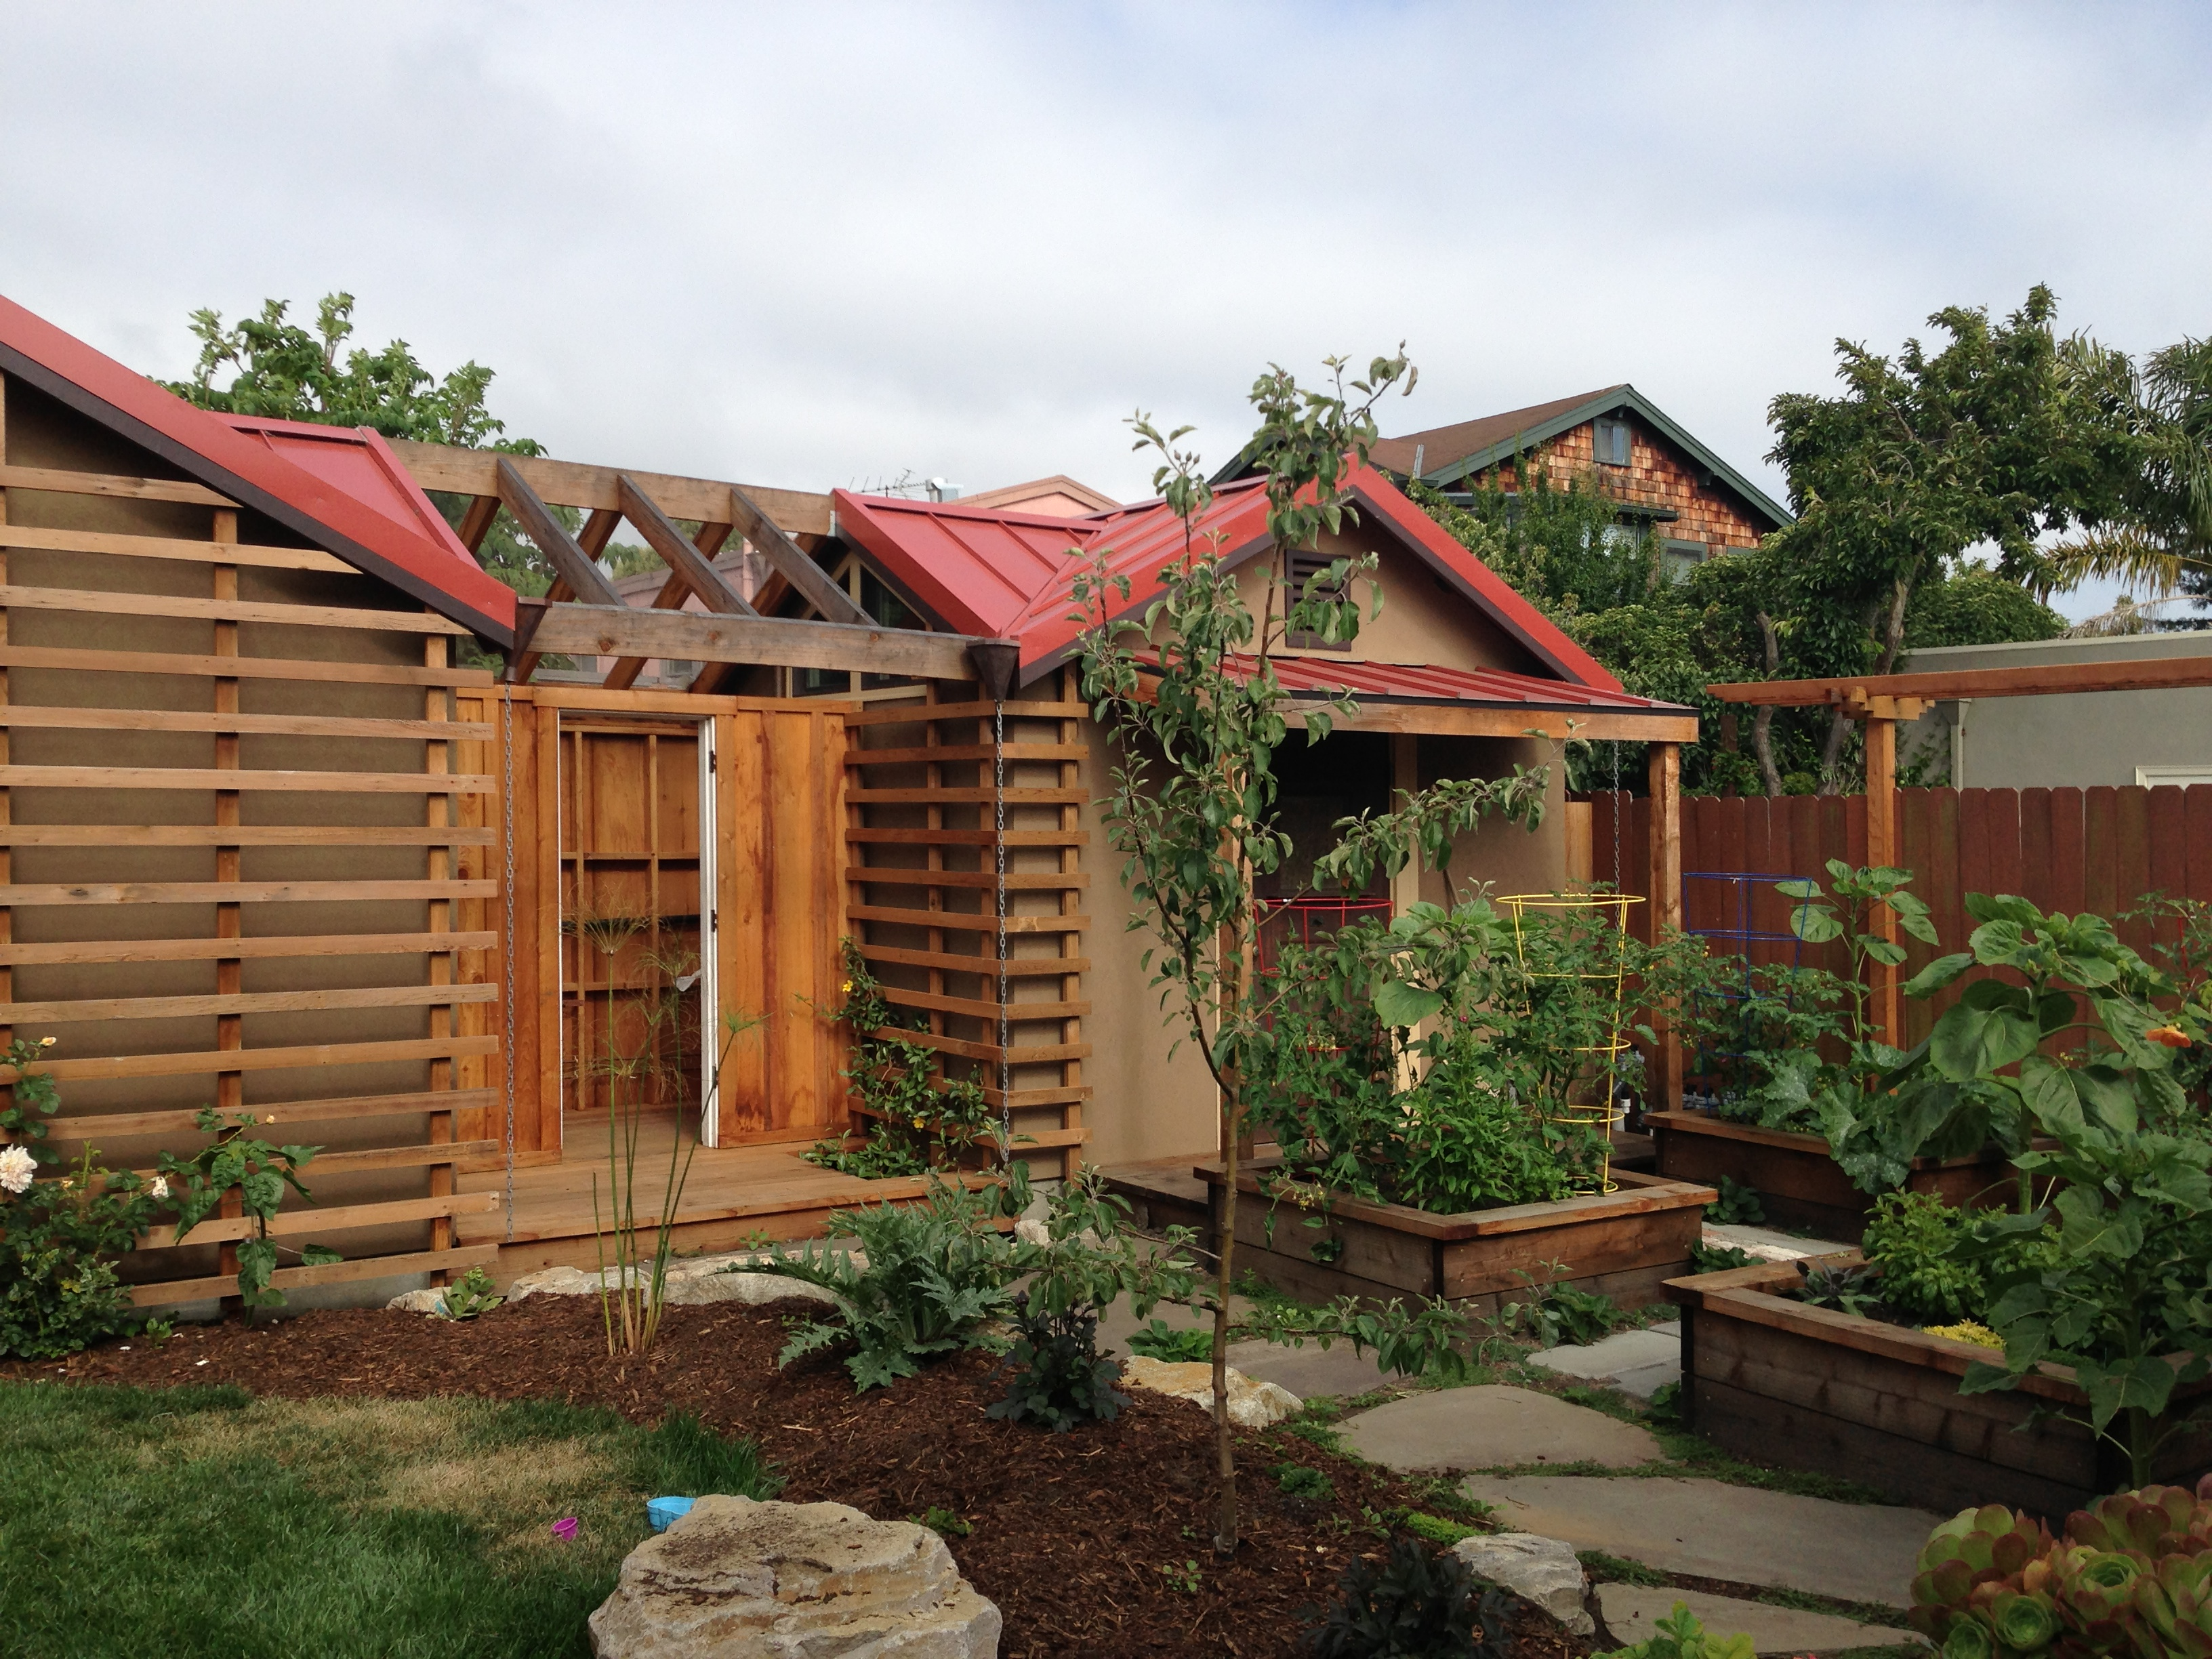 trellises, vegetable beds, and roses and vines starting to climb